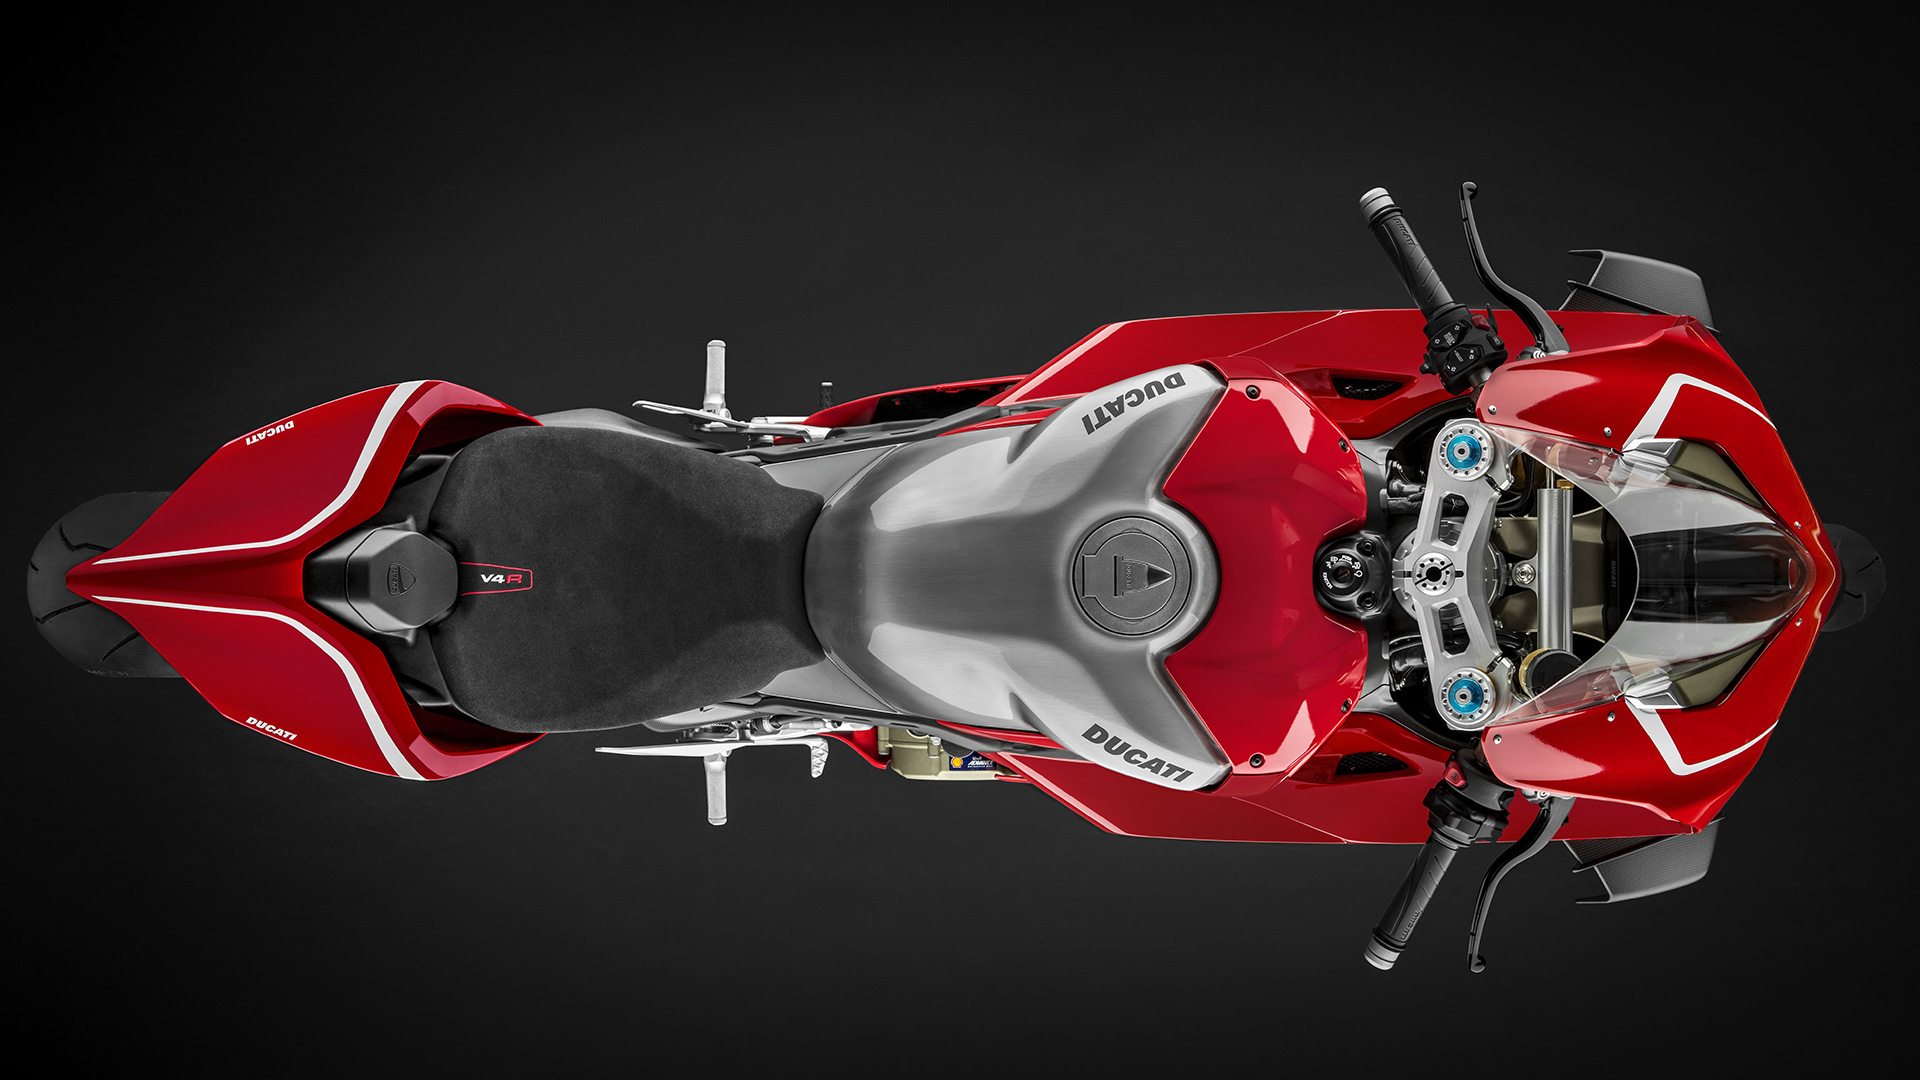 New Ducati Panigale V4 R Pure Racing Adrenaline 748 Ignition Wiring Diagram Designed For The Track